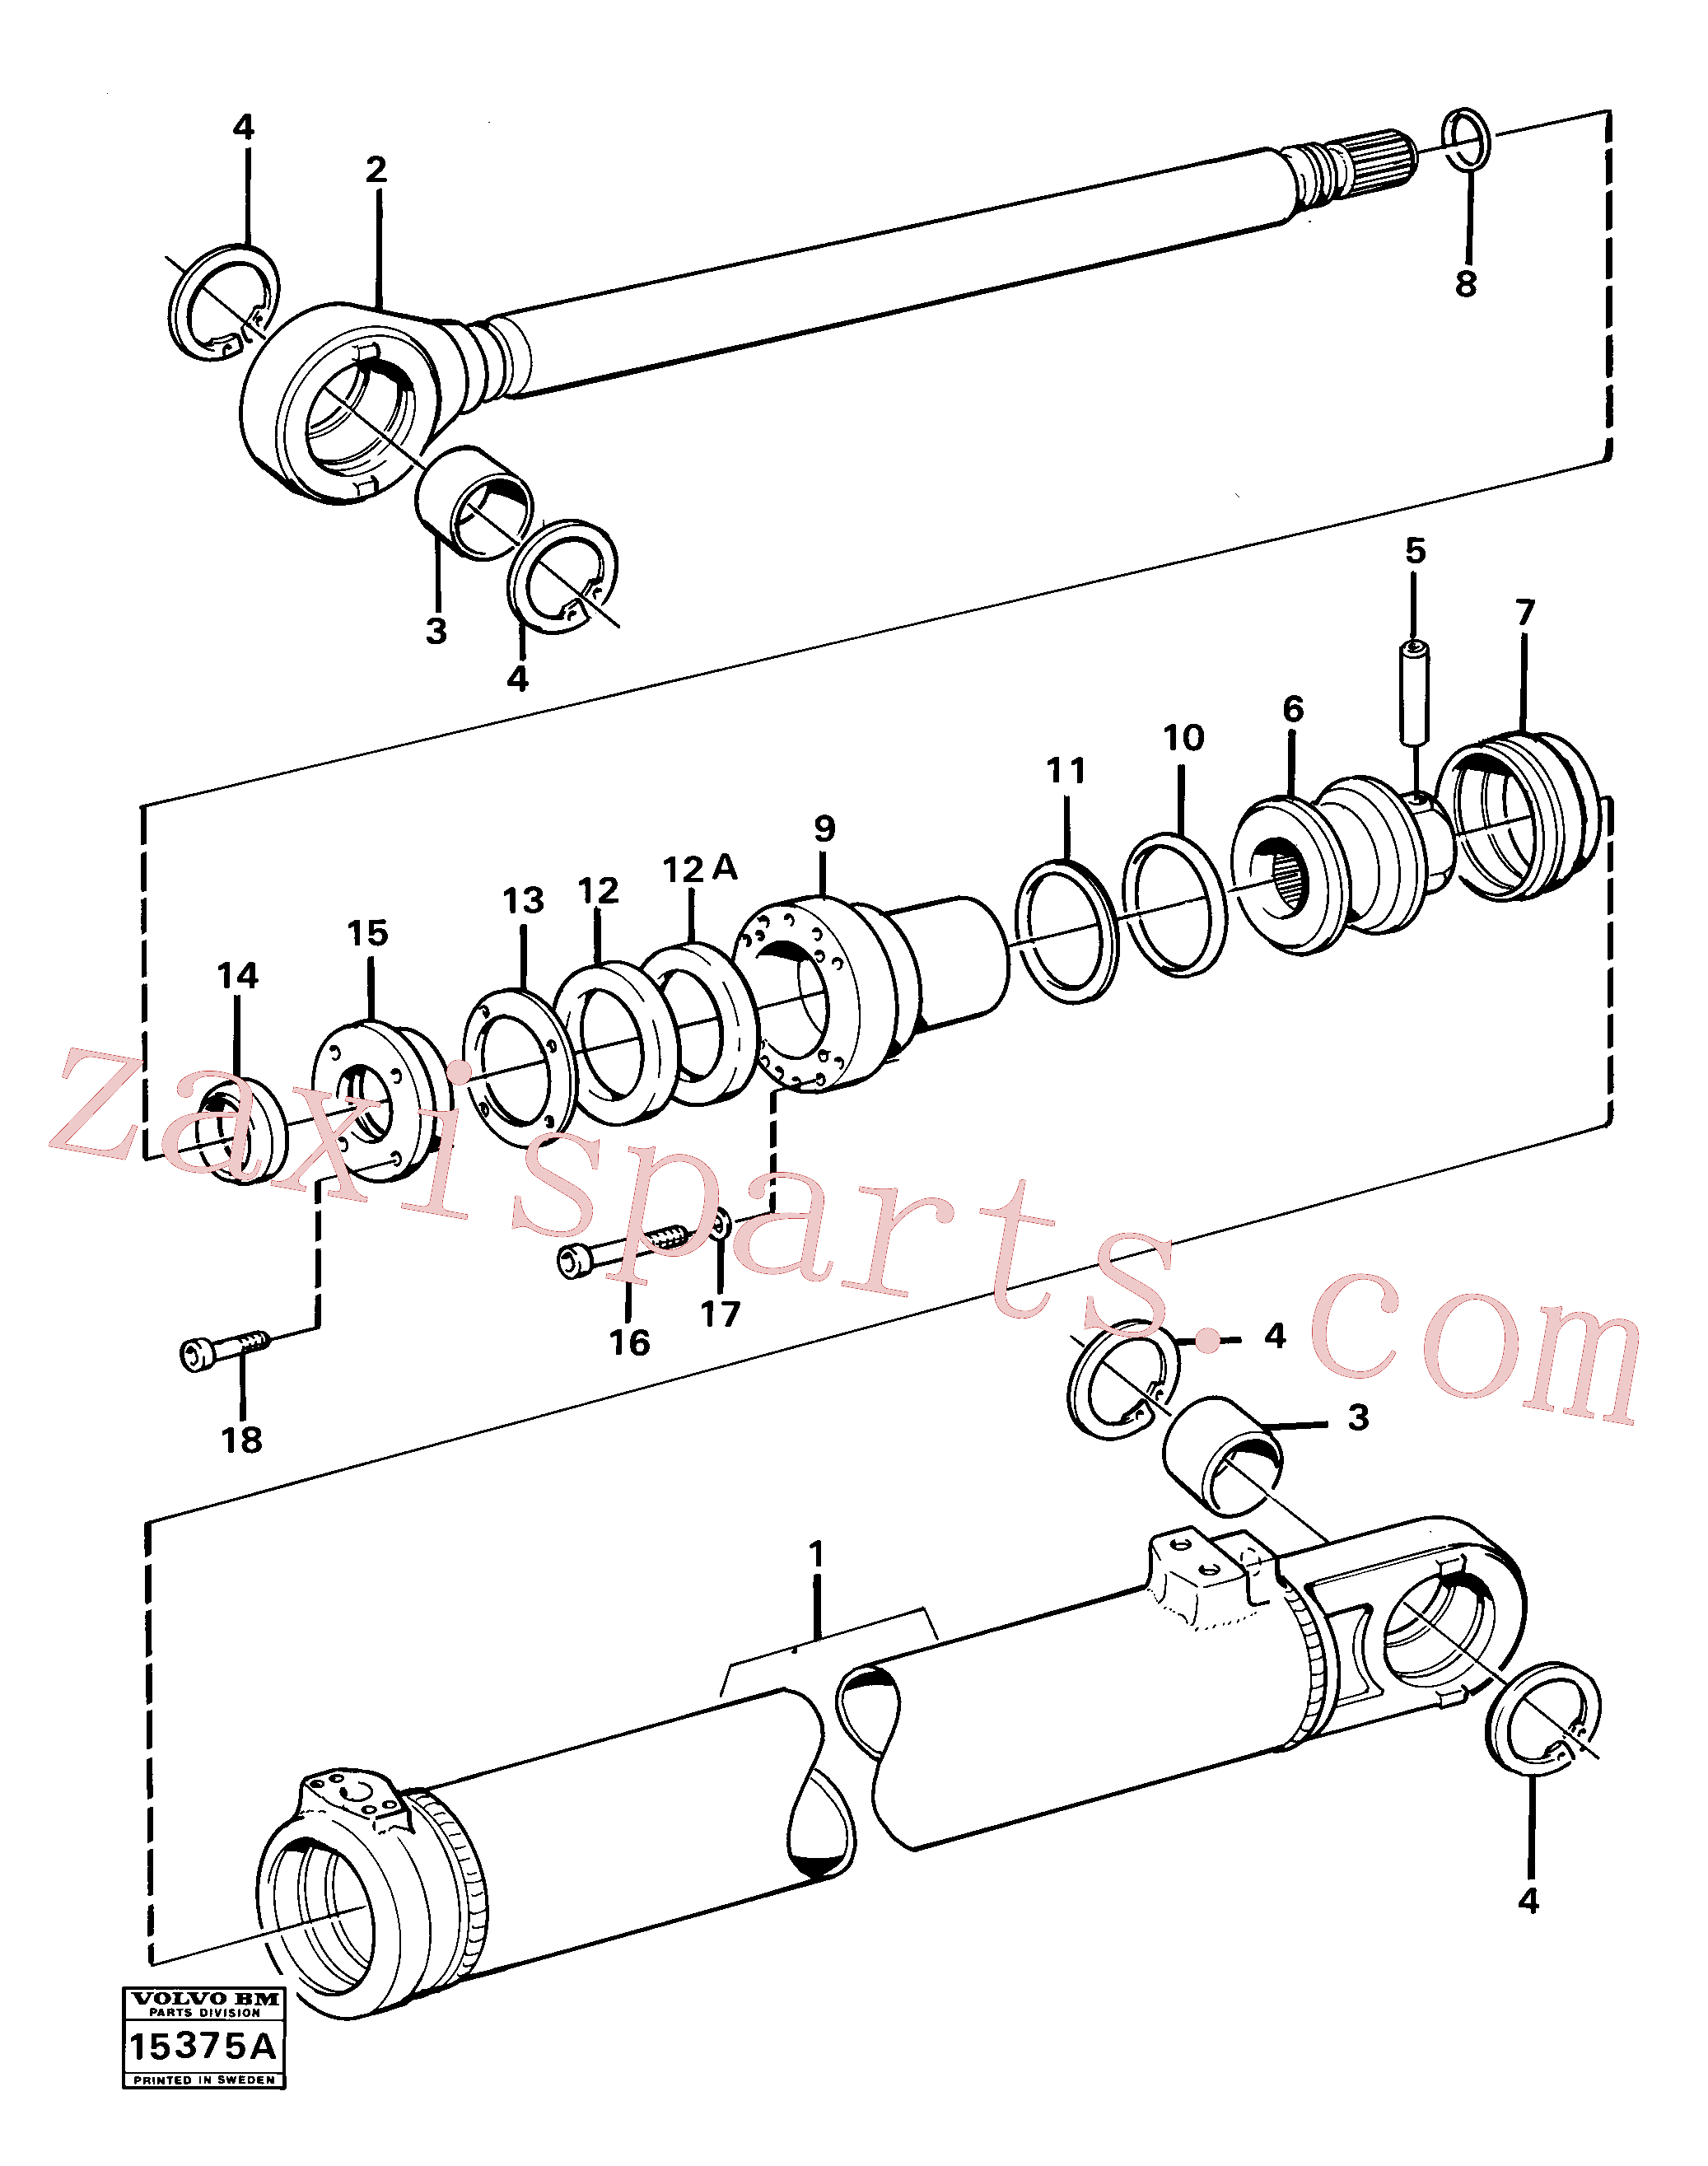 VOE14013014 for Volvo Hydraulic cylinder tilting(15375A assembly)